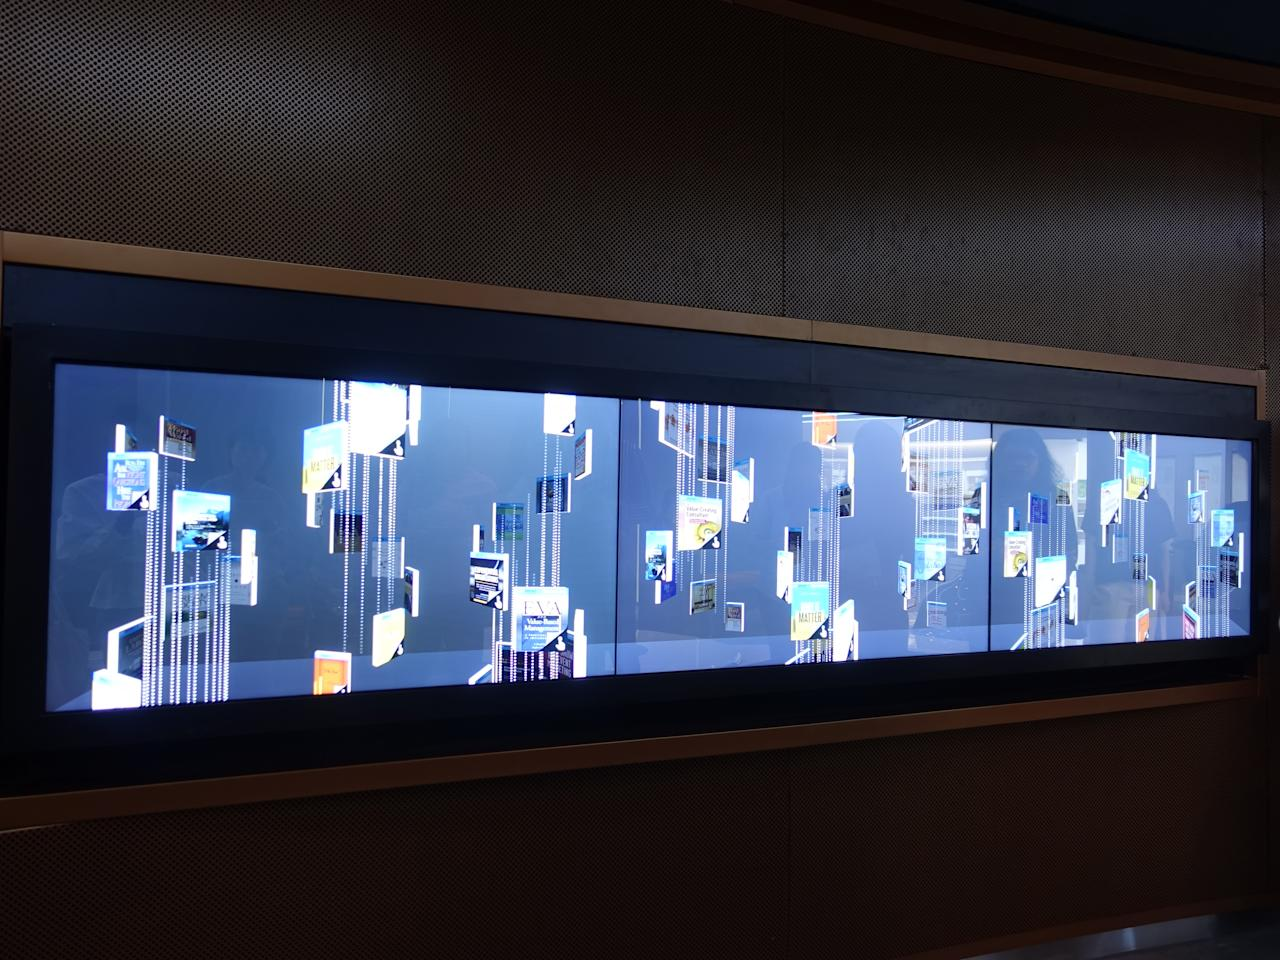 <p>The eBook art display for visitors to interact with and explore new book titles. (Photo: Nurul Azliah/Yahoo Lifestyle Singapore) </p>